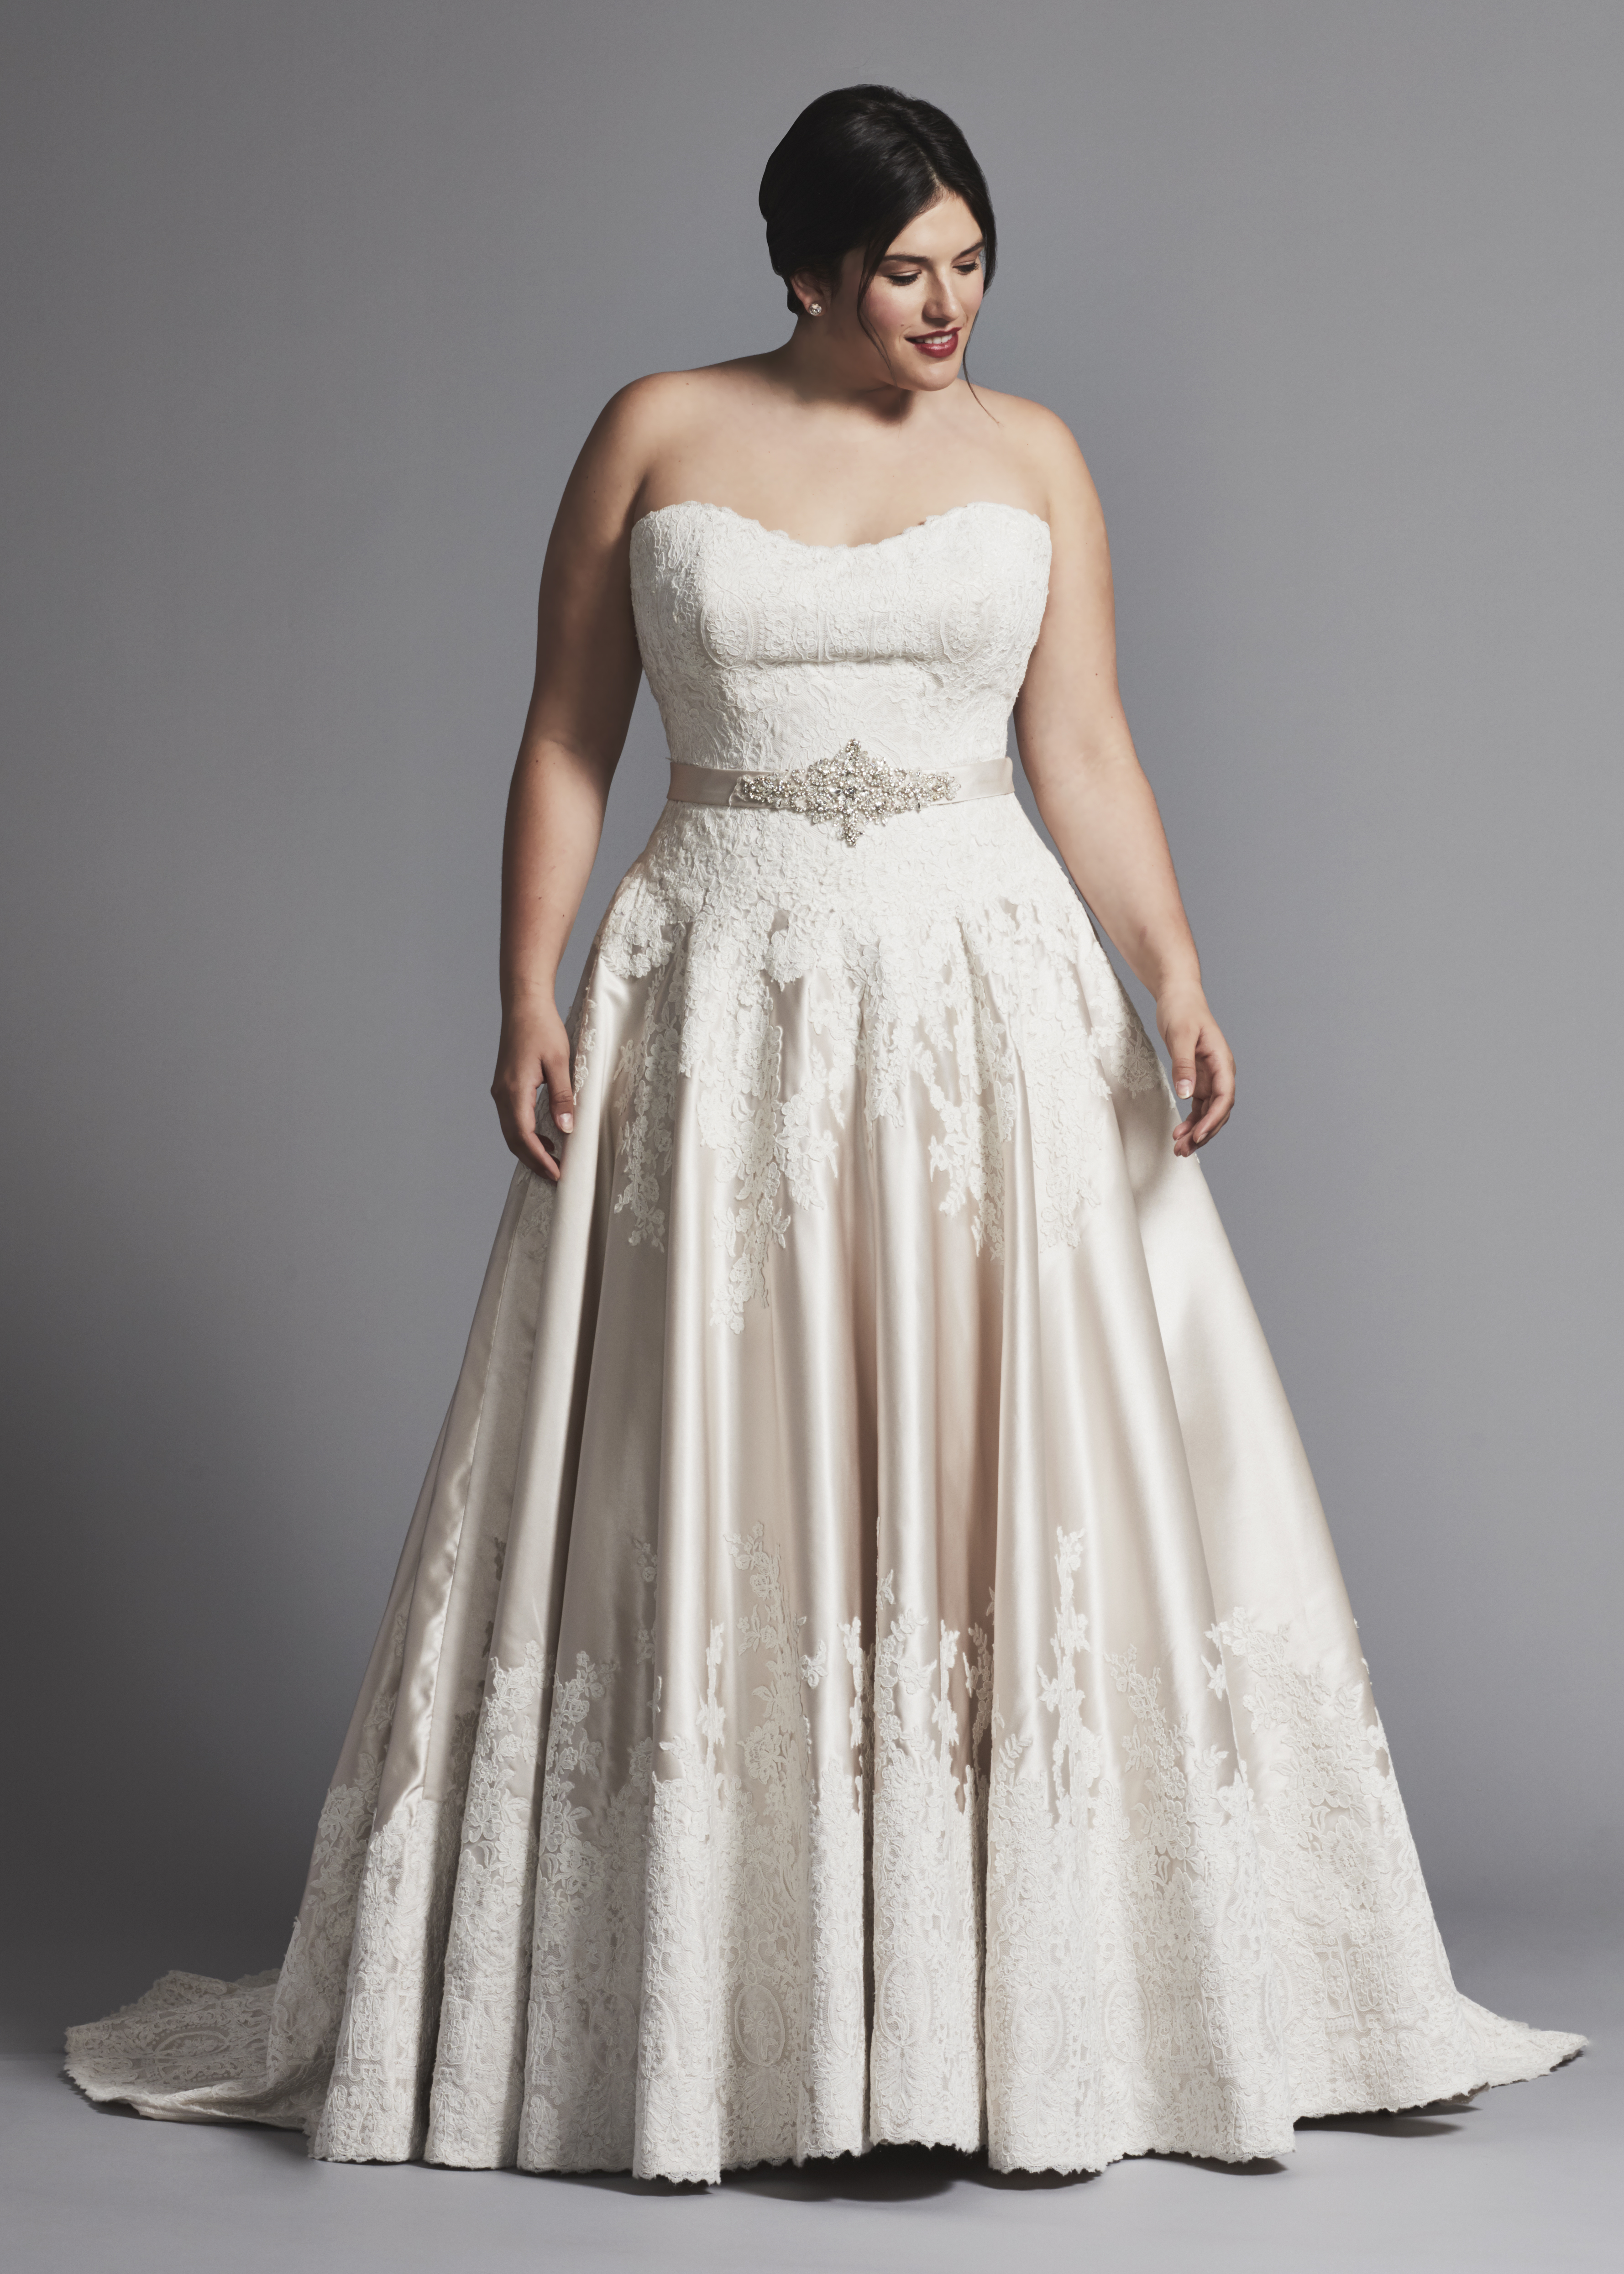 Strapless Lace And Satin A-line Wedding Dress   Kleinfeld Bridal